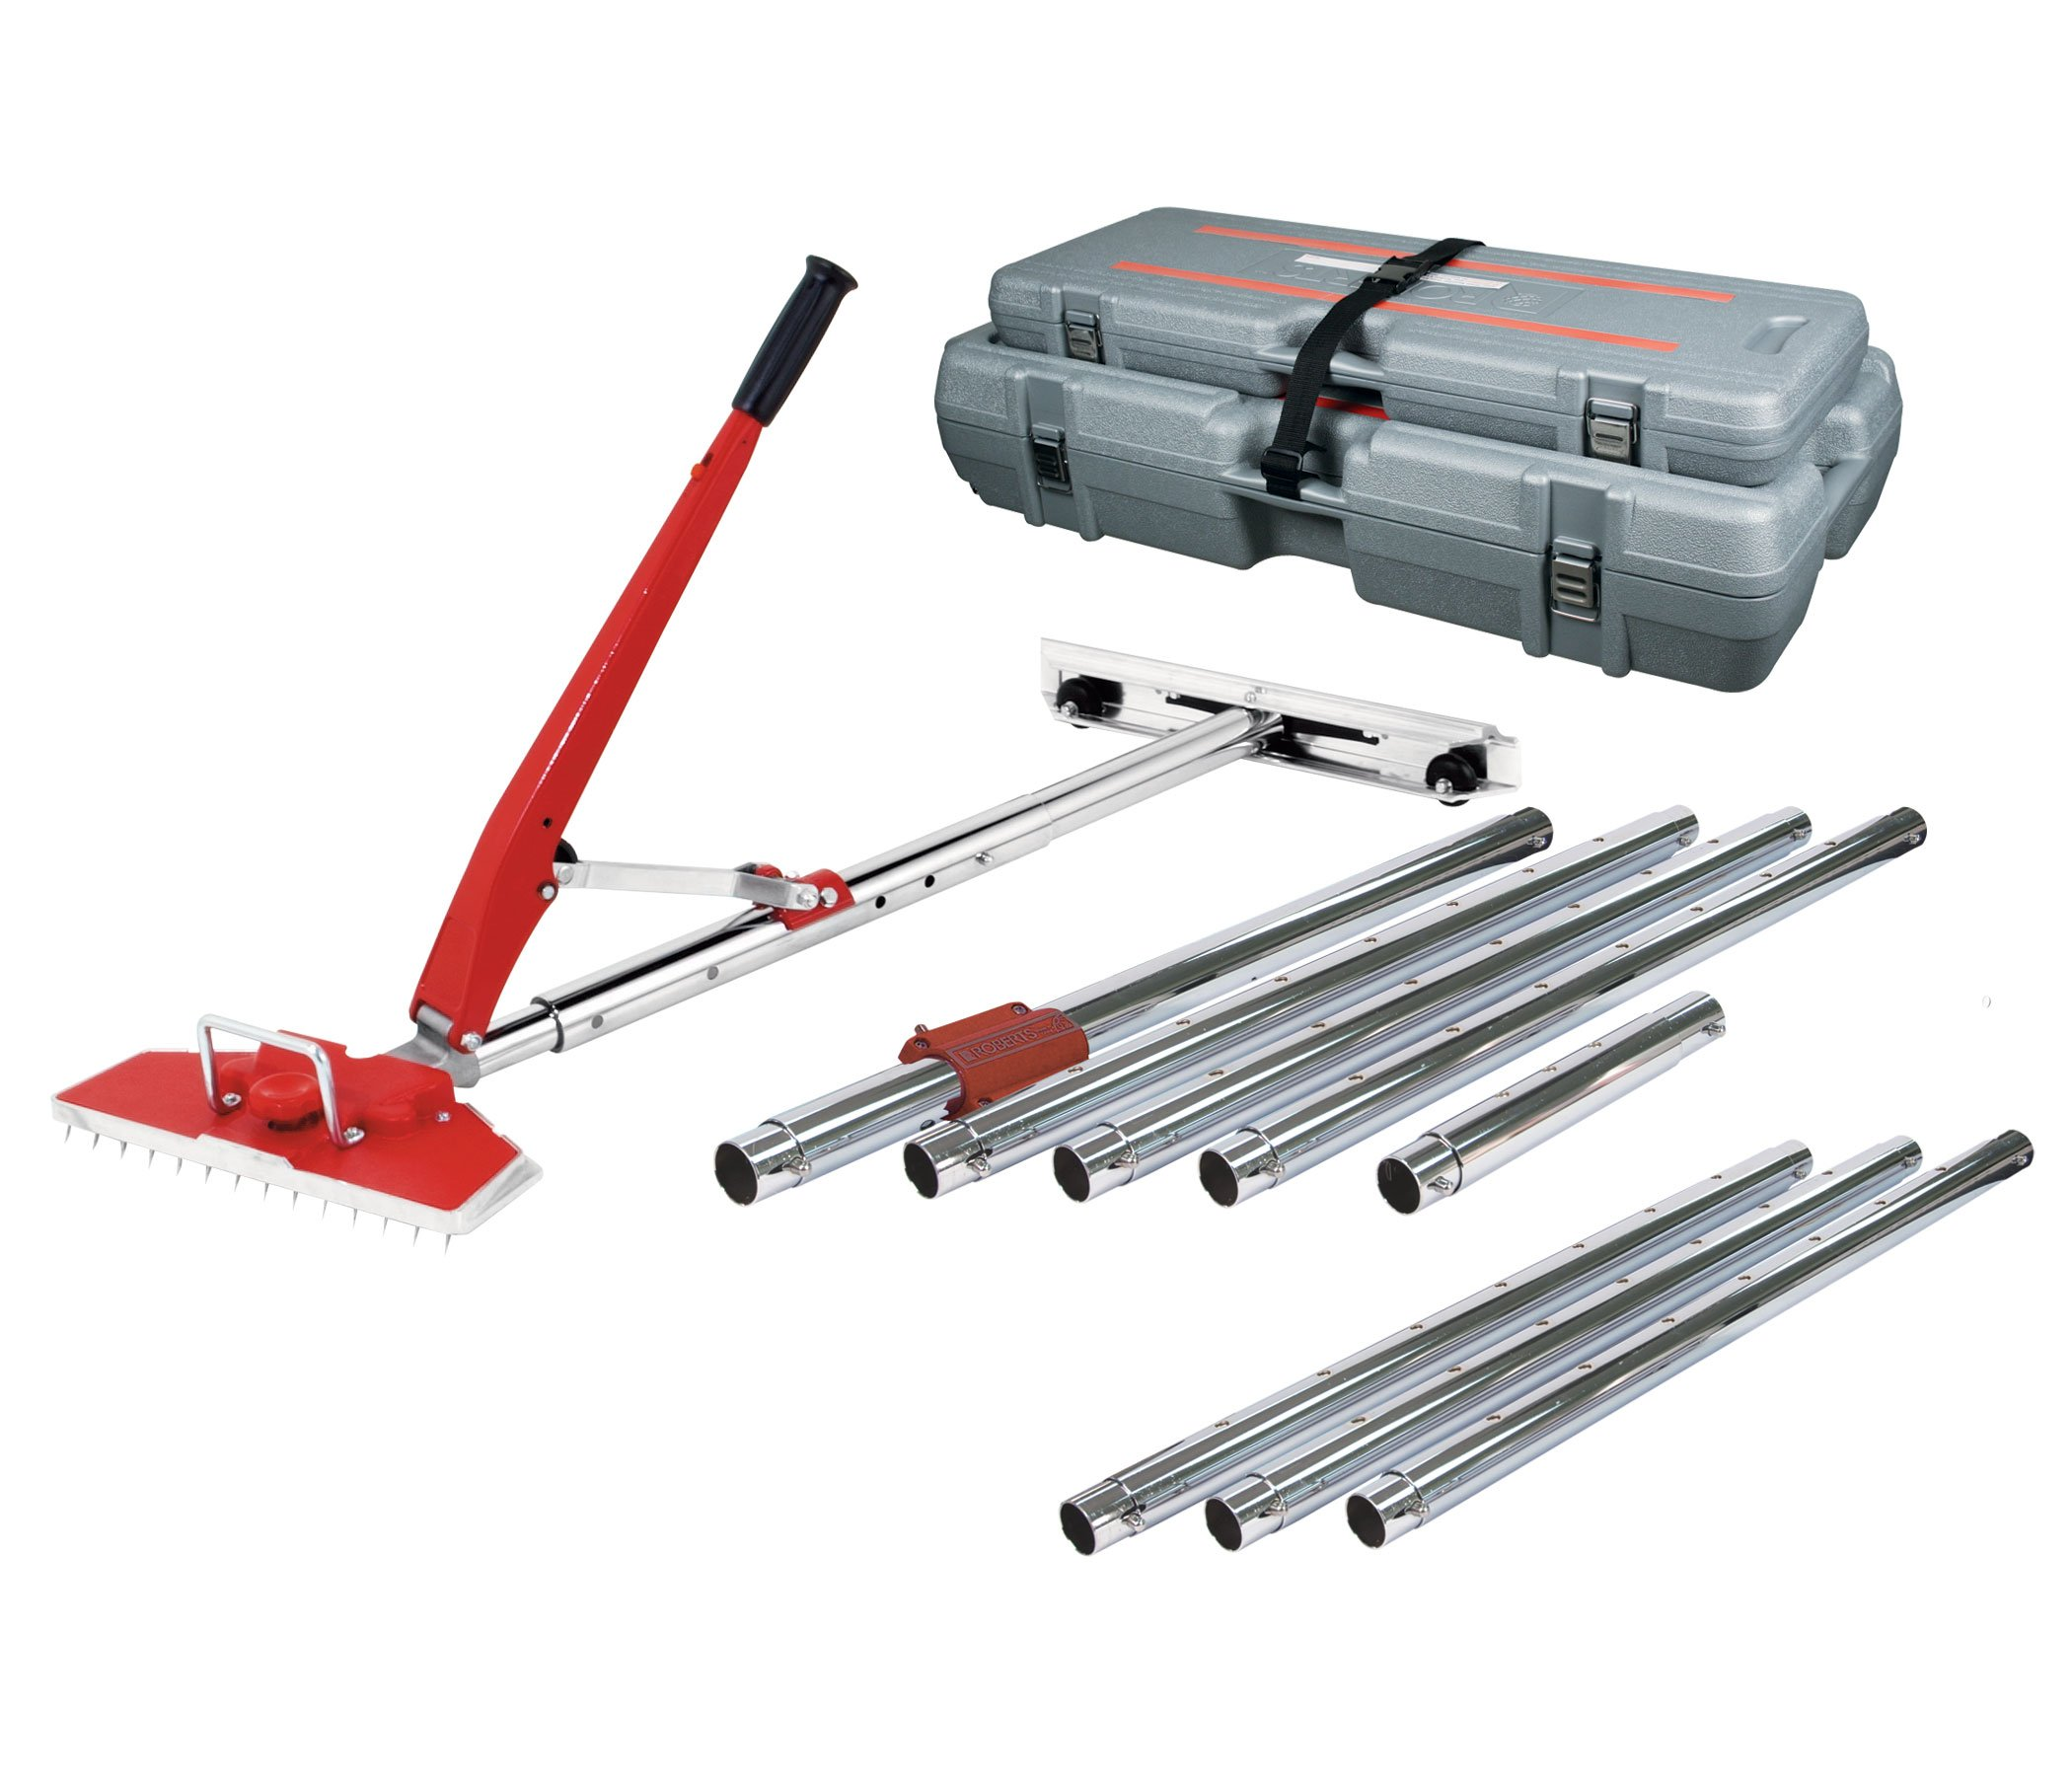 Roberts 10-254V Value Kit Power-Lok Carpet Stretcher with 17 Locking Positions and 18-Inch Tail Block with Wheels